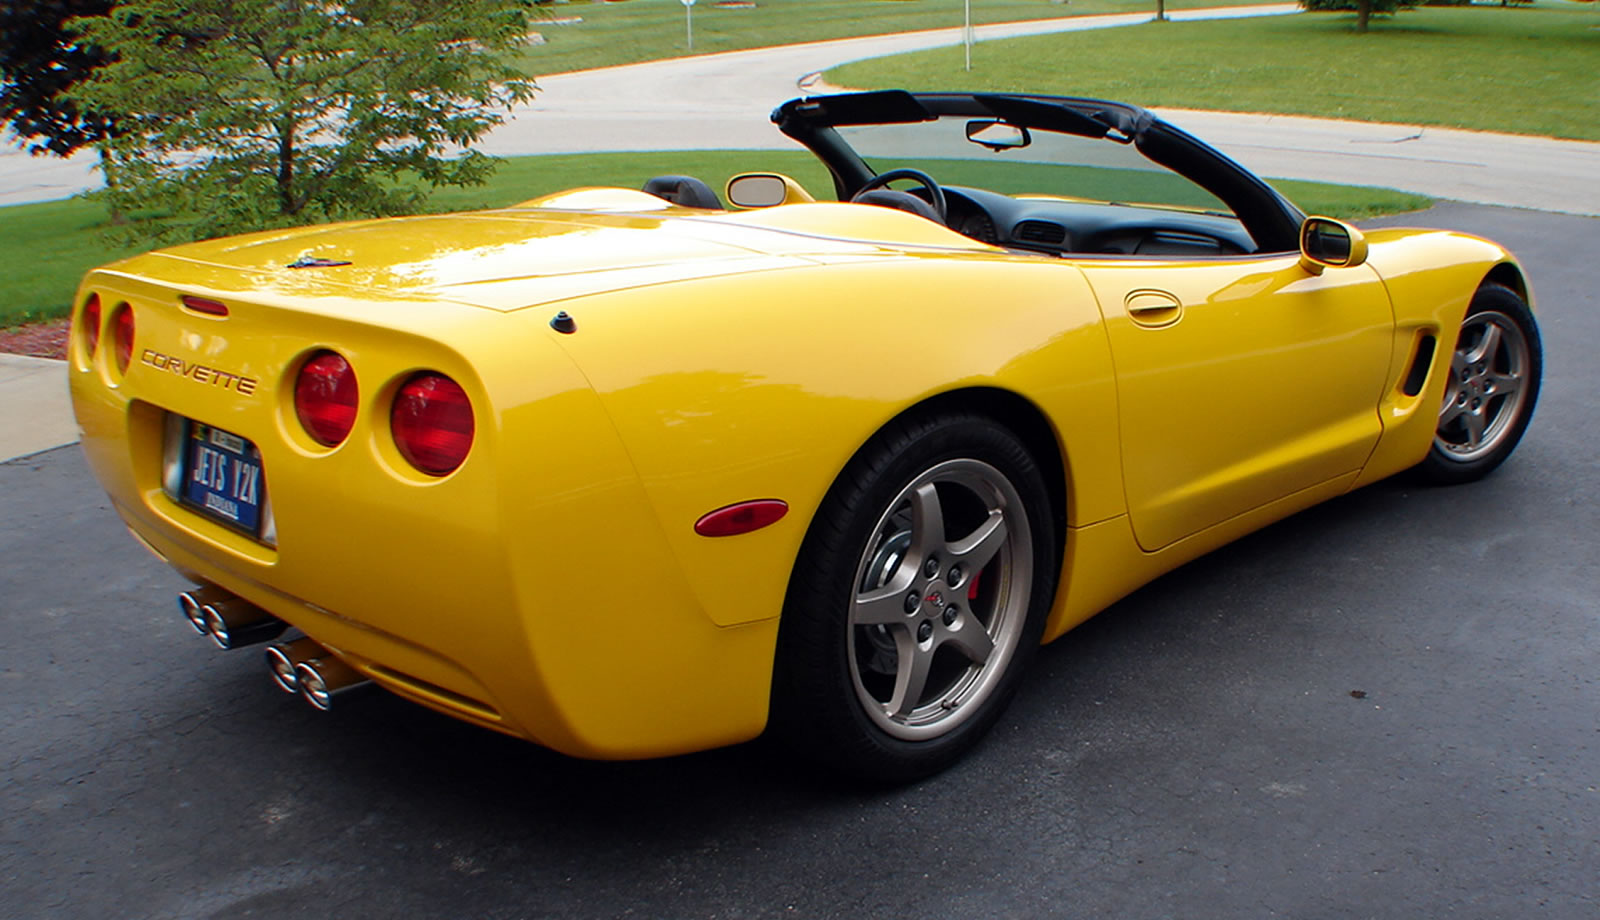 f s 2000 millenium yellow convertible 6 speed corvetteforum chevrolet corvette forum discussion. Black Bedroom Furniture Sets. Home Design Ideas